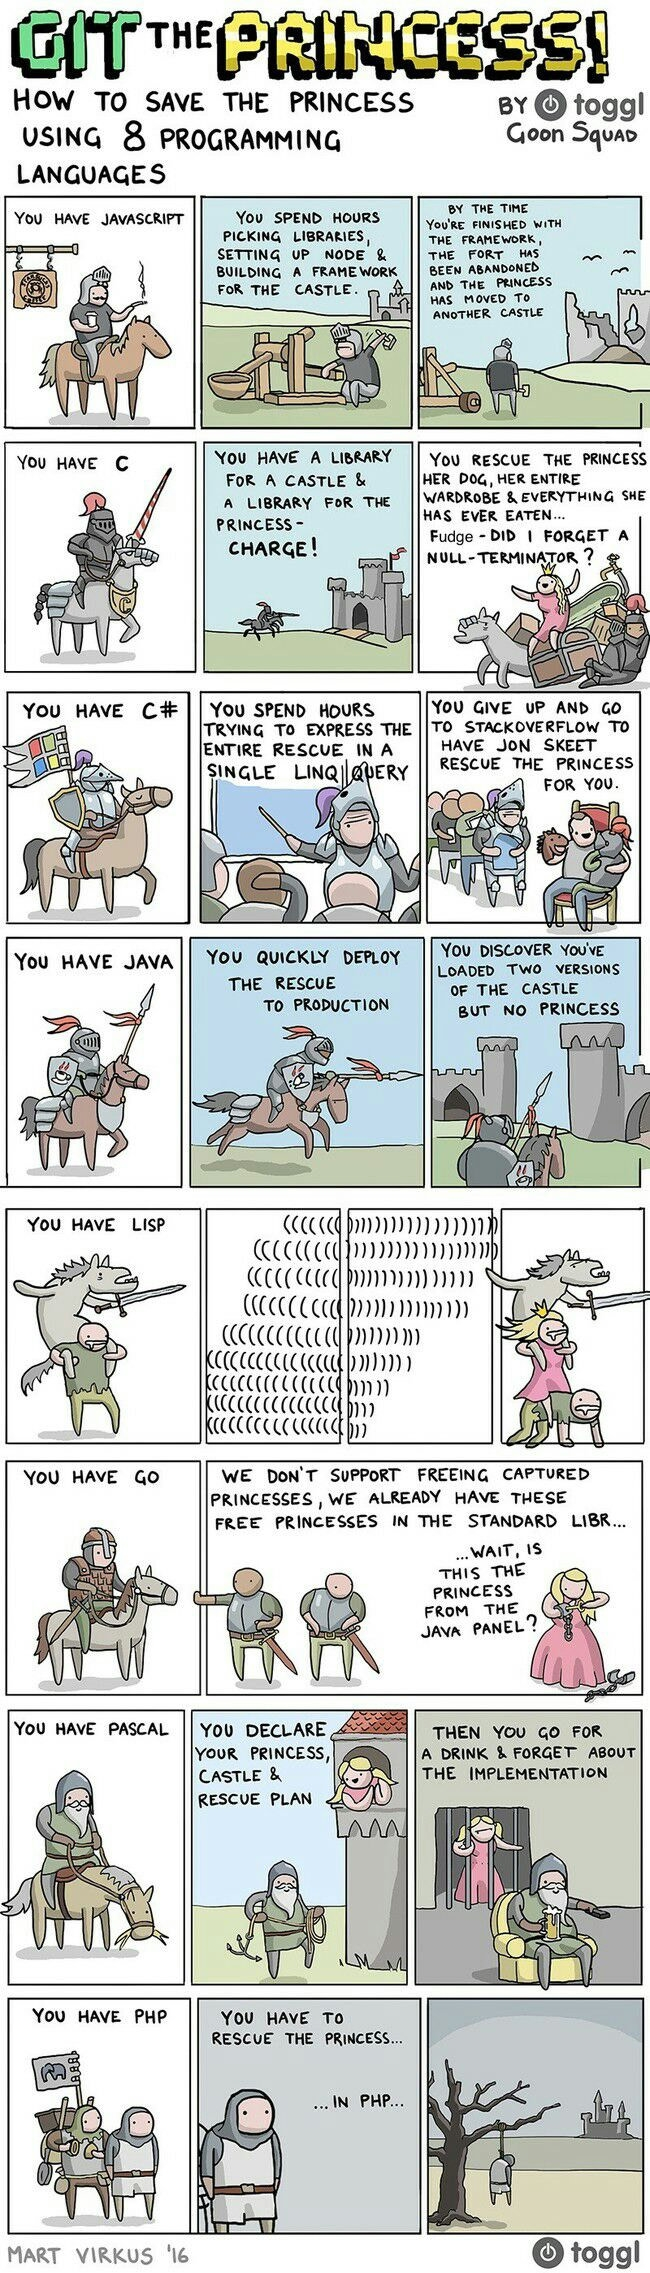 Save the princess using programming languages